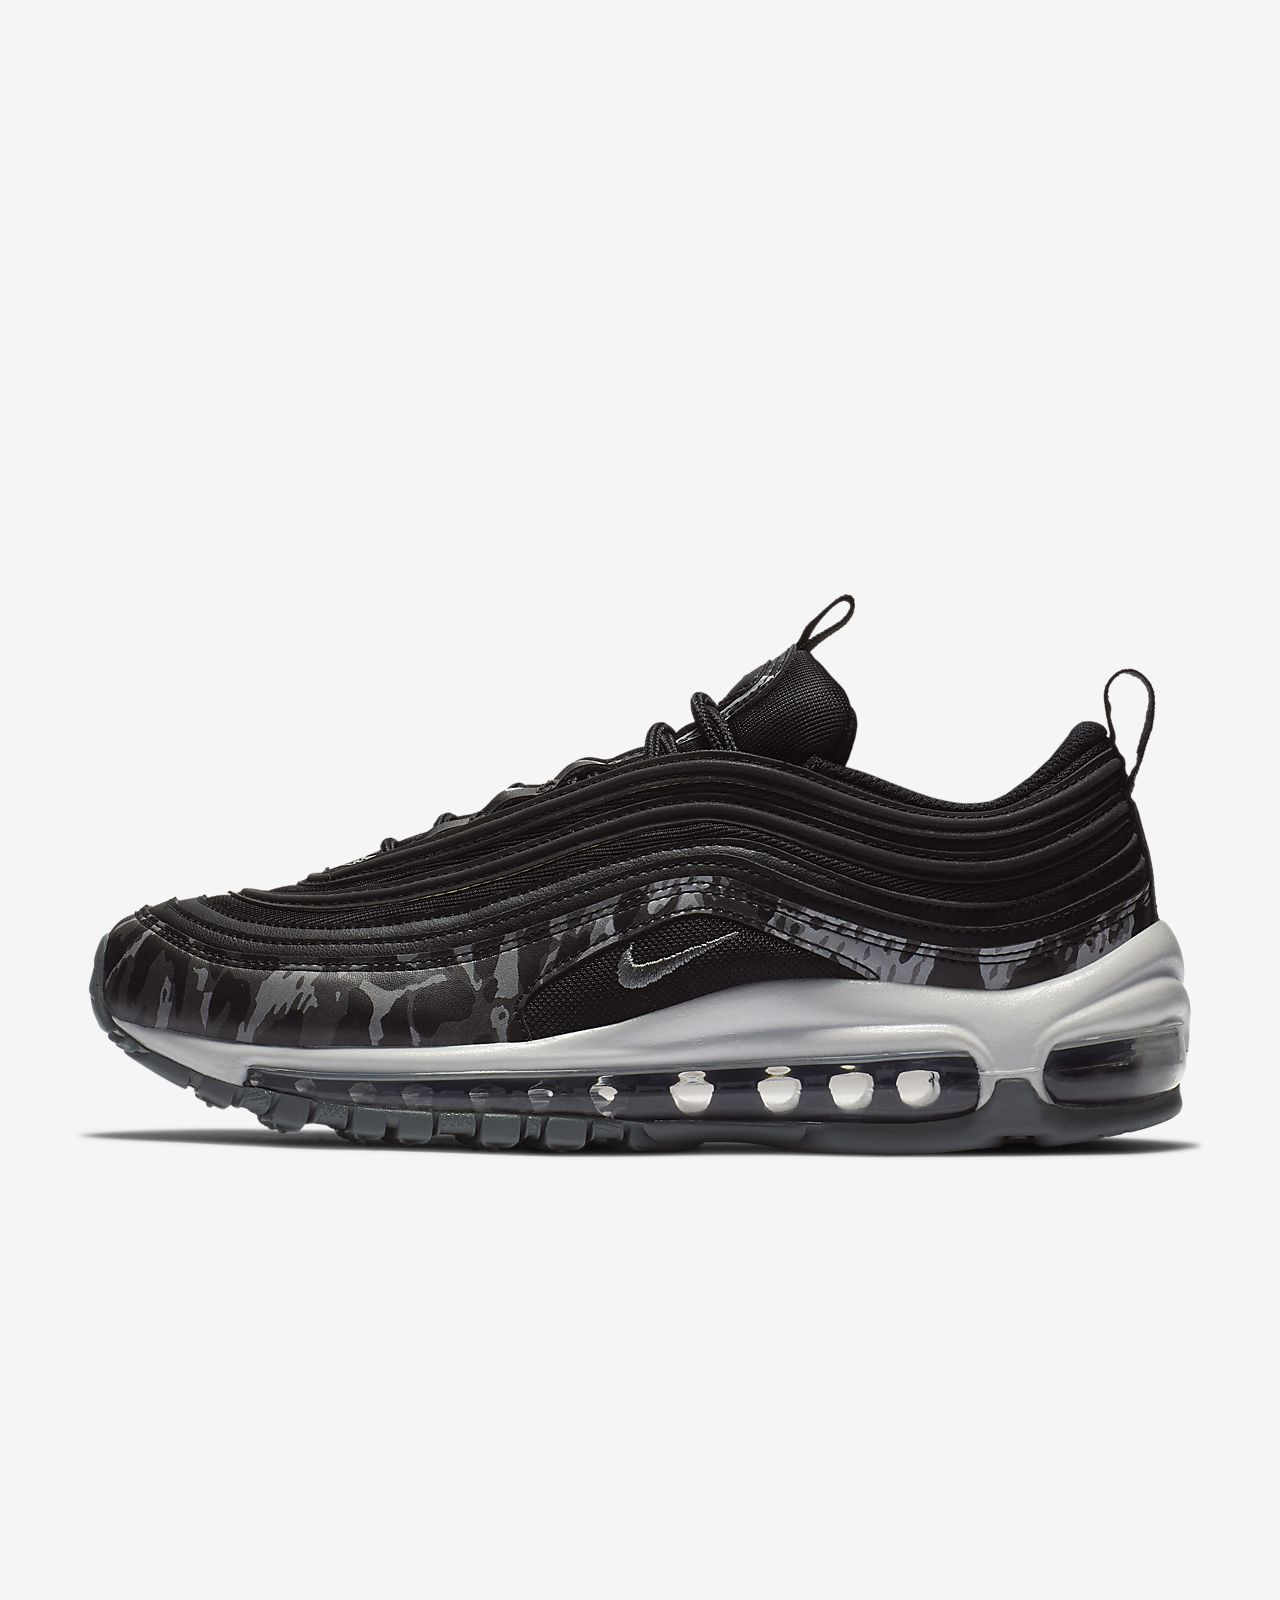 499784aa2d37 Nike Air Max 97 Premium Women s Shoe. Nike.com GB